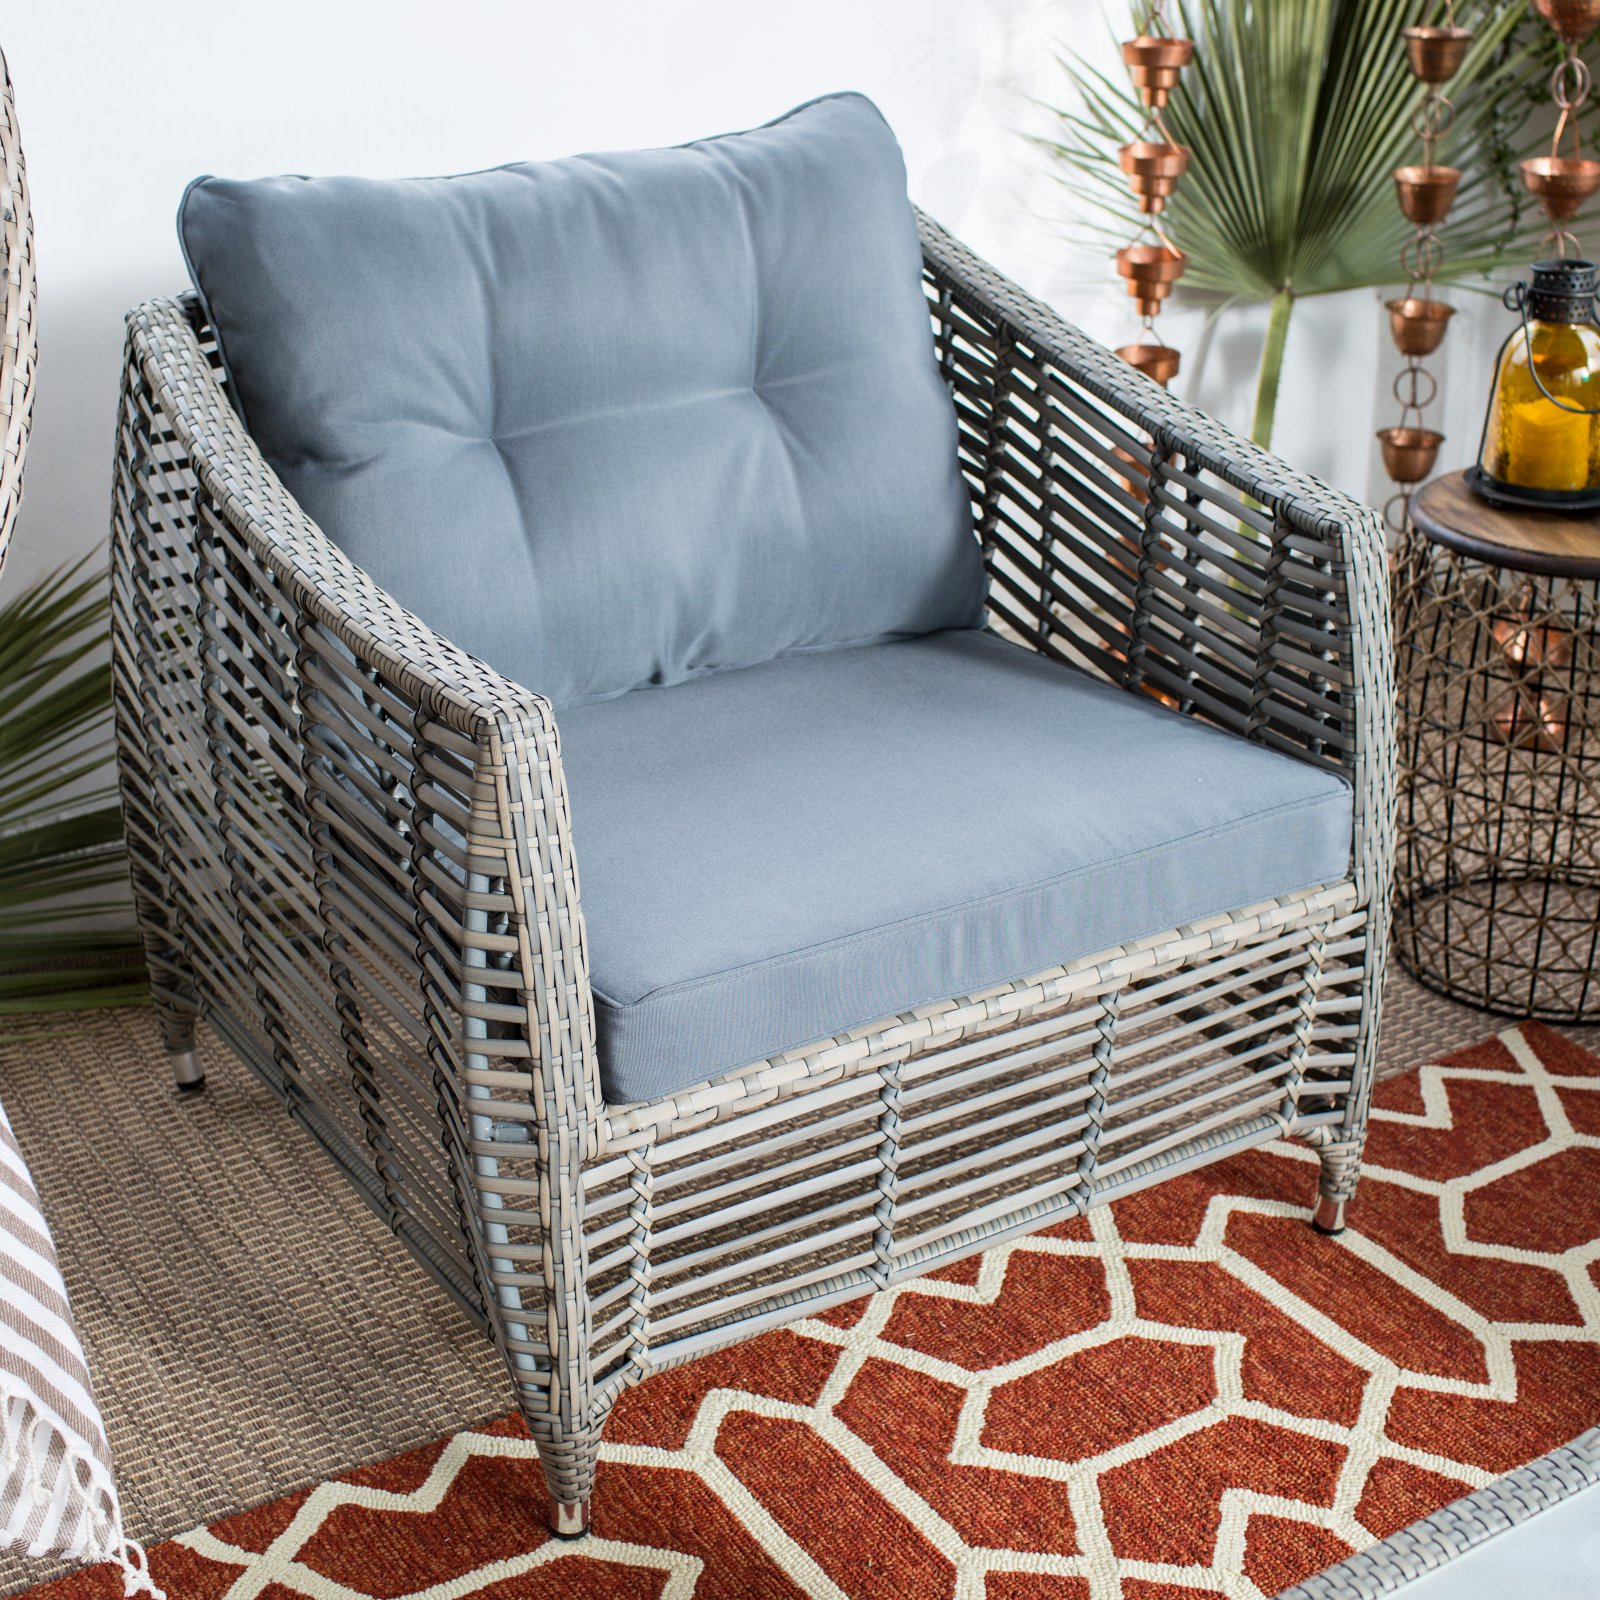 Belham Living Kambree All-Weather Wicker Deep Seating Chair with Cushion